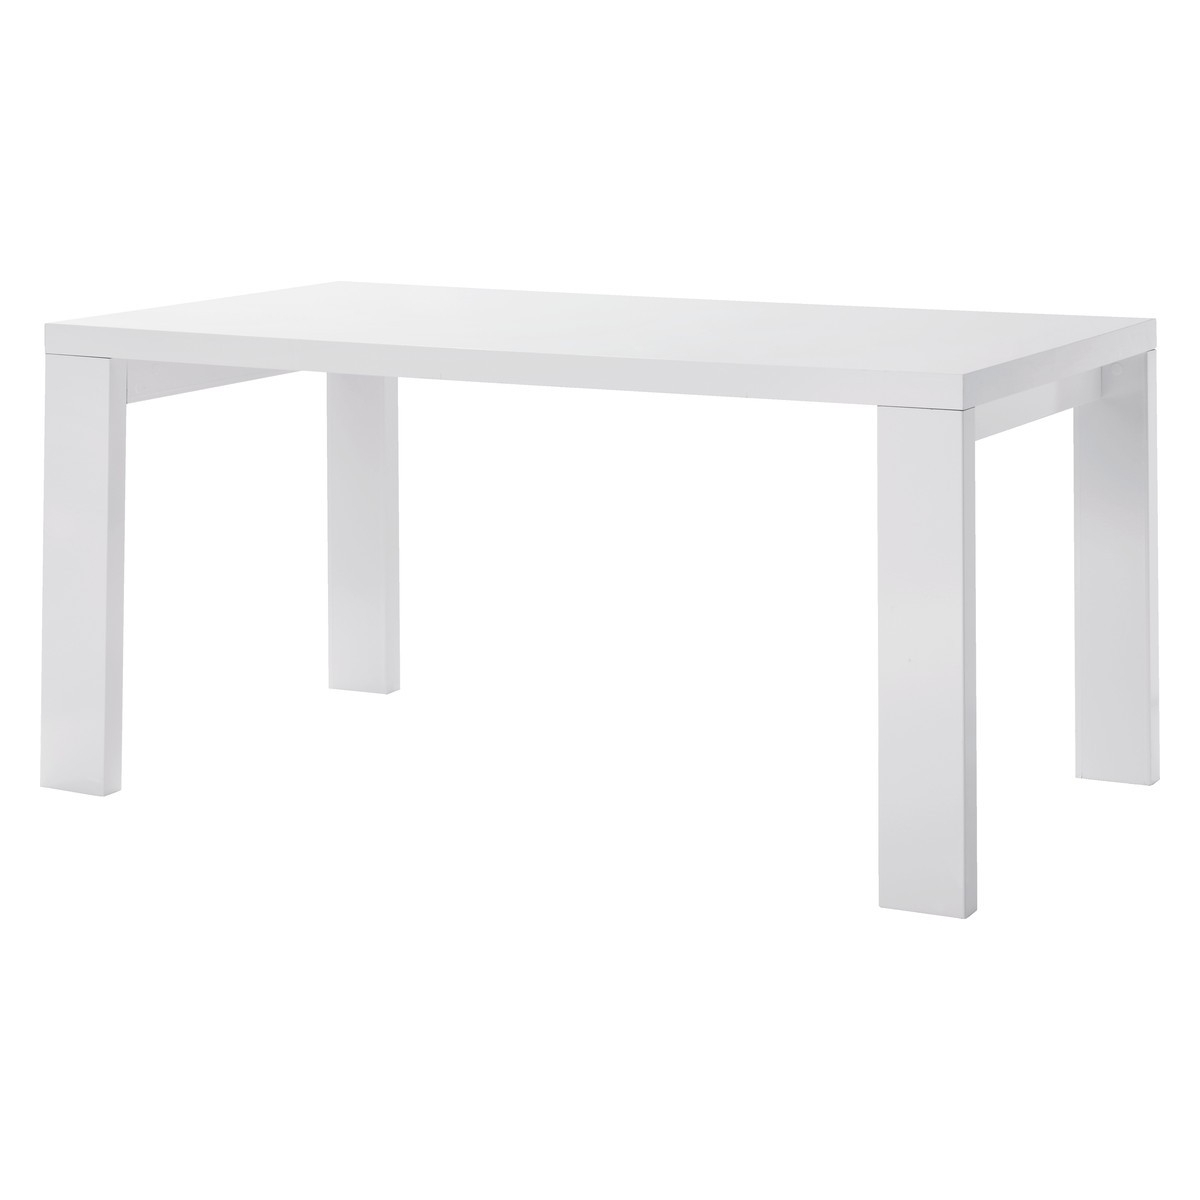 Favorite White High Gloss Dining Tables With Regard To Asper 6 Seat White High Gloss Dining Table (View 7 of 25)